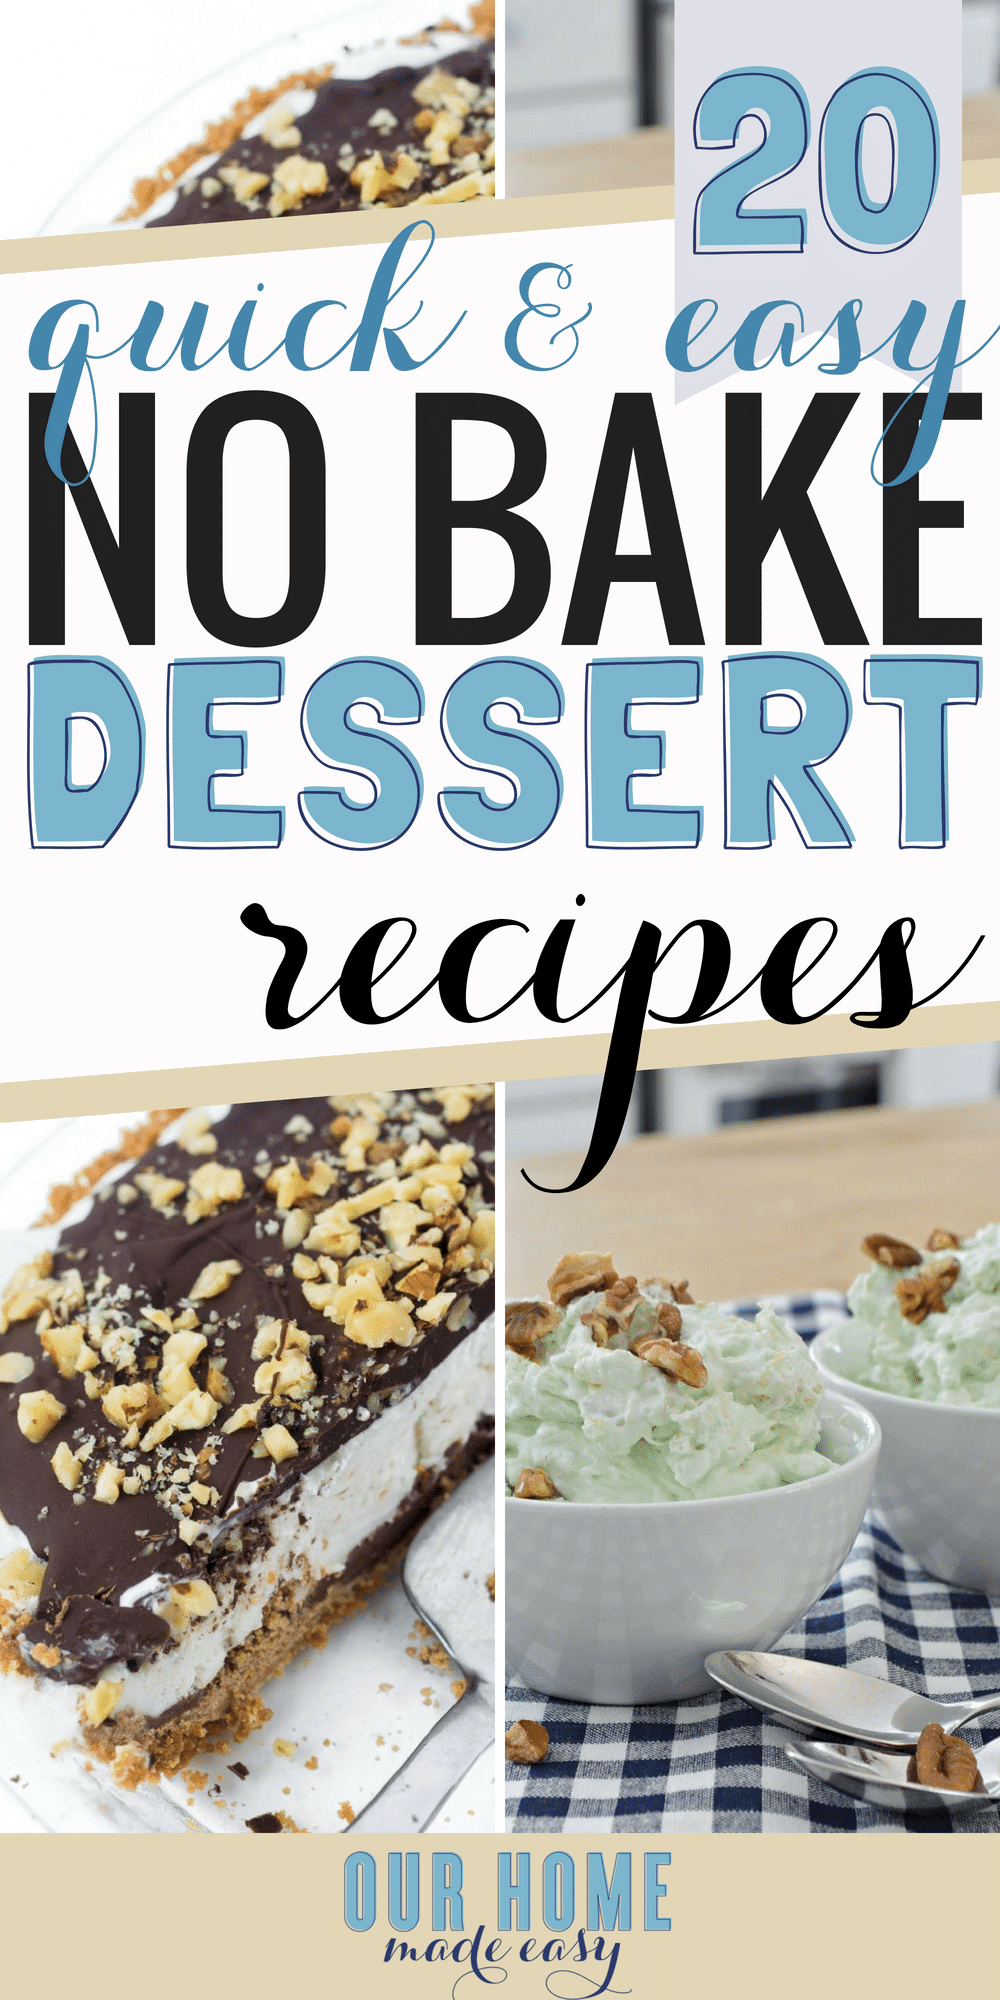 Looking for  easy and no bake dessert recipes? Here are 20 that you can make this afternoon with almost zero effort! Click to see the recipes! #desserts #chocoloate #nobake #recipes #sweets